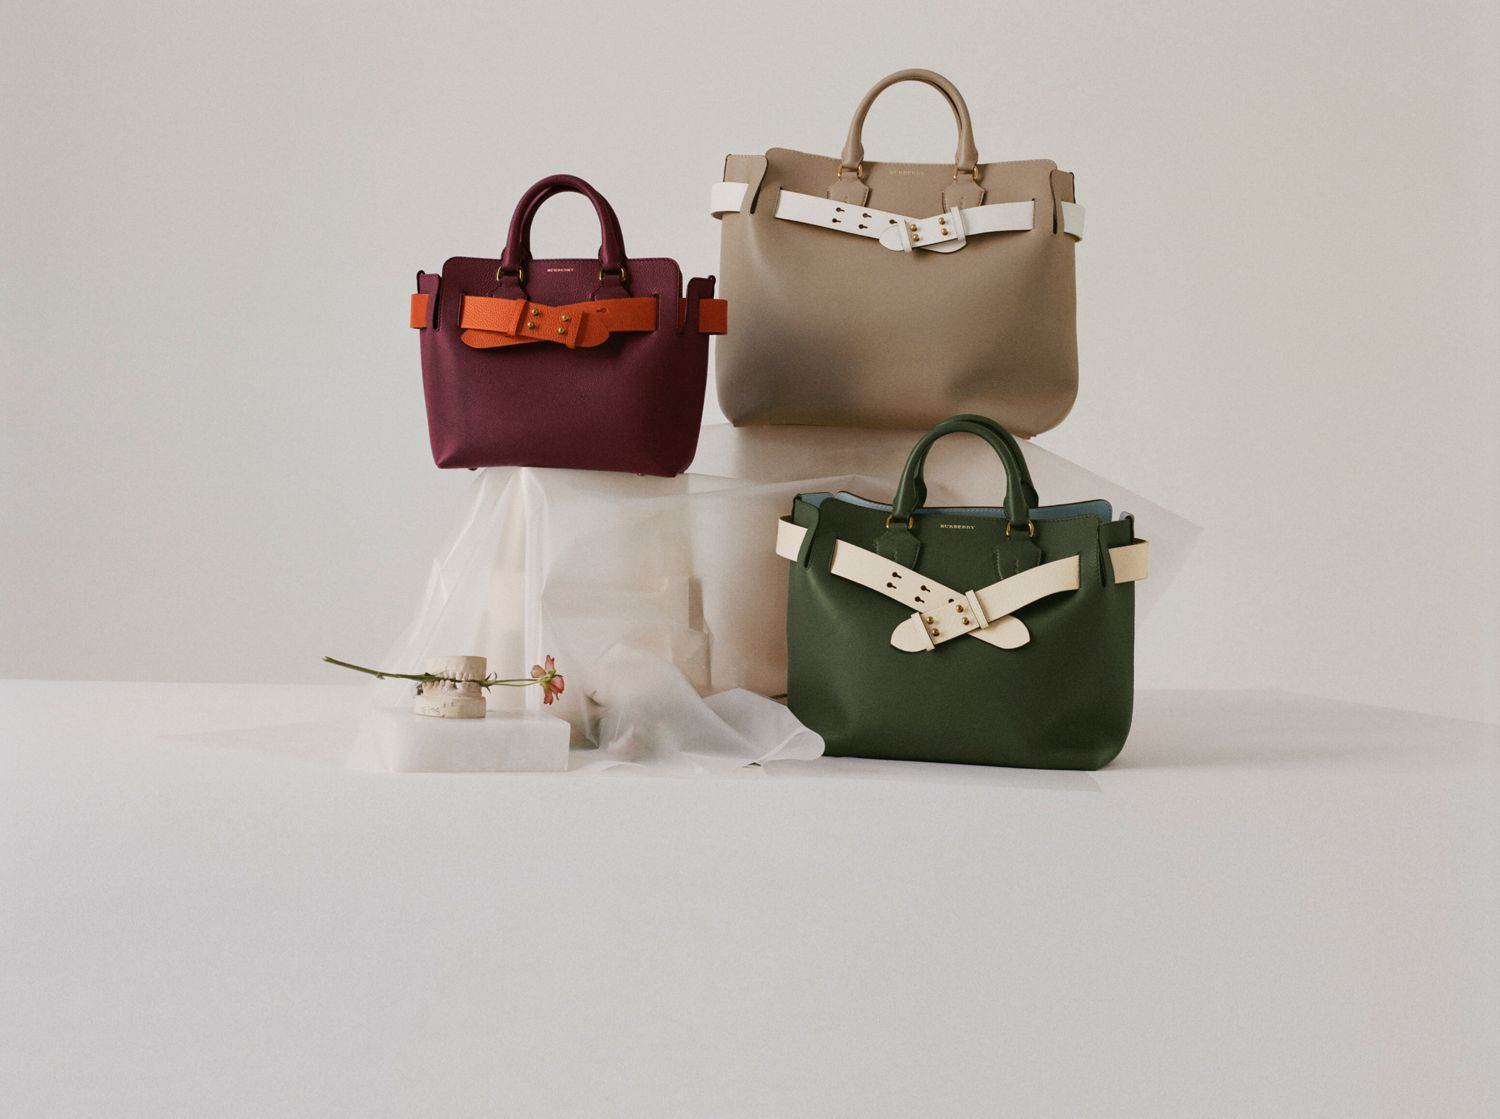 La collection de sacs The Belt